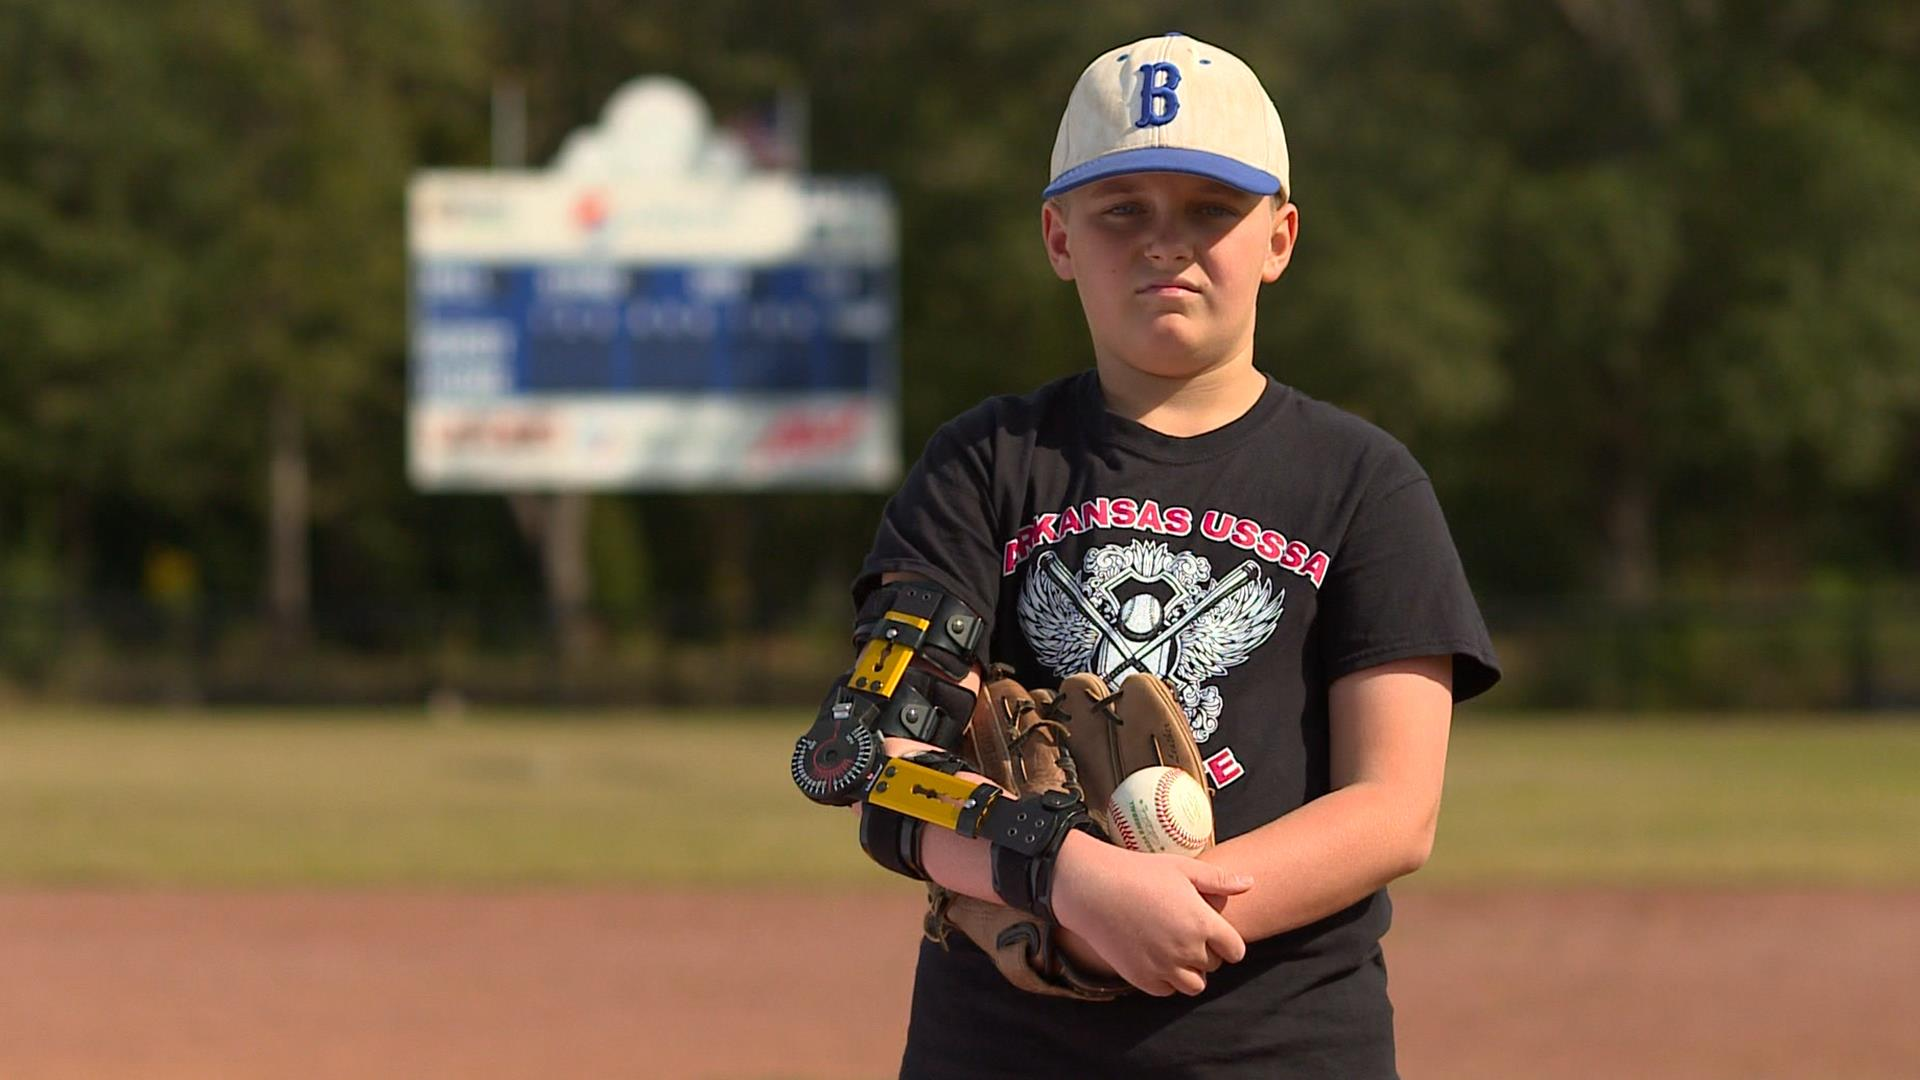 Tommy John for teens: Why kids get major league surgery